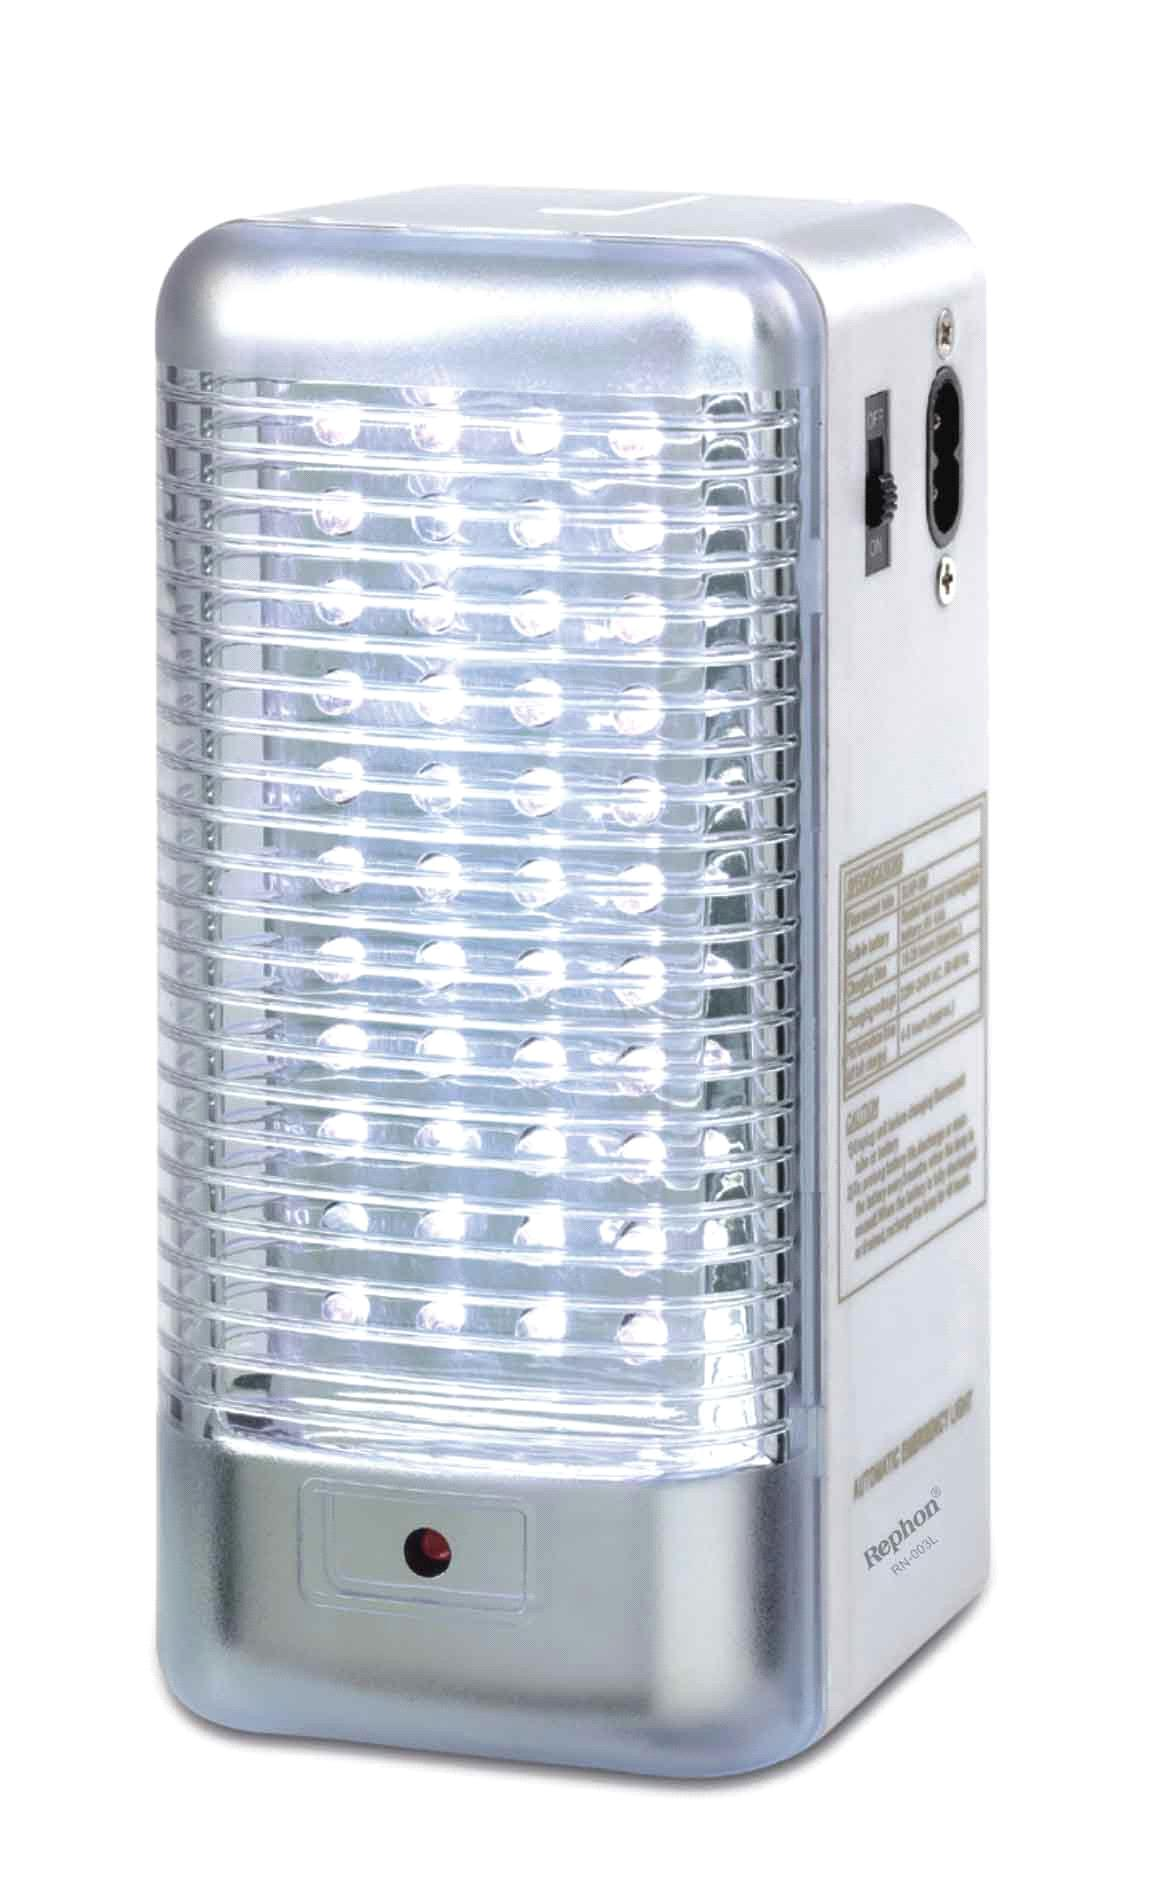 Led rechargeable emergency light purchasing souring